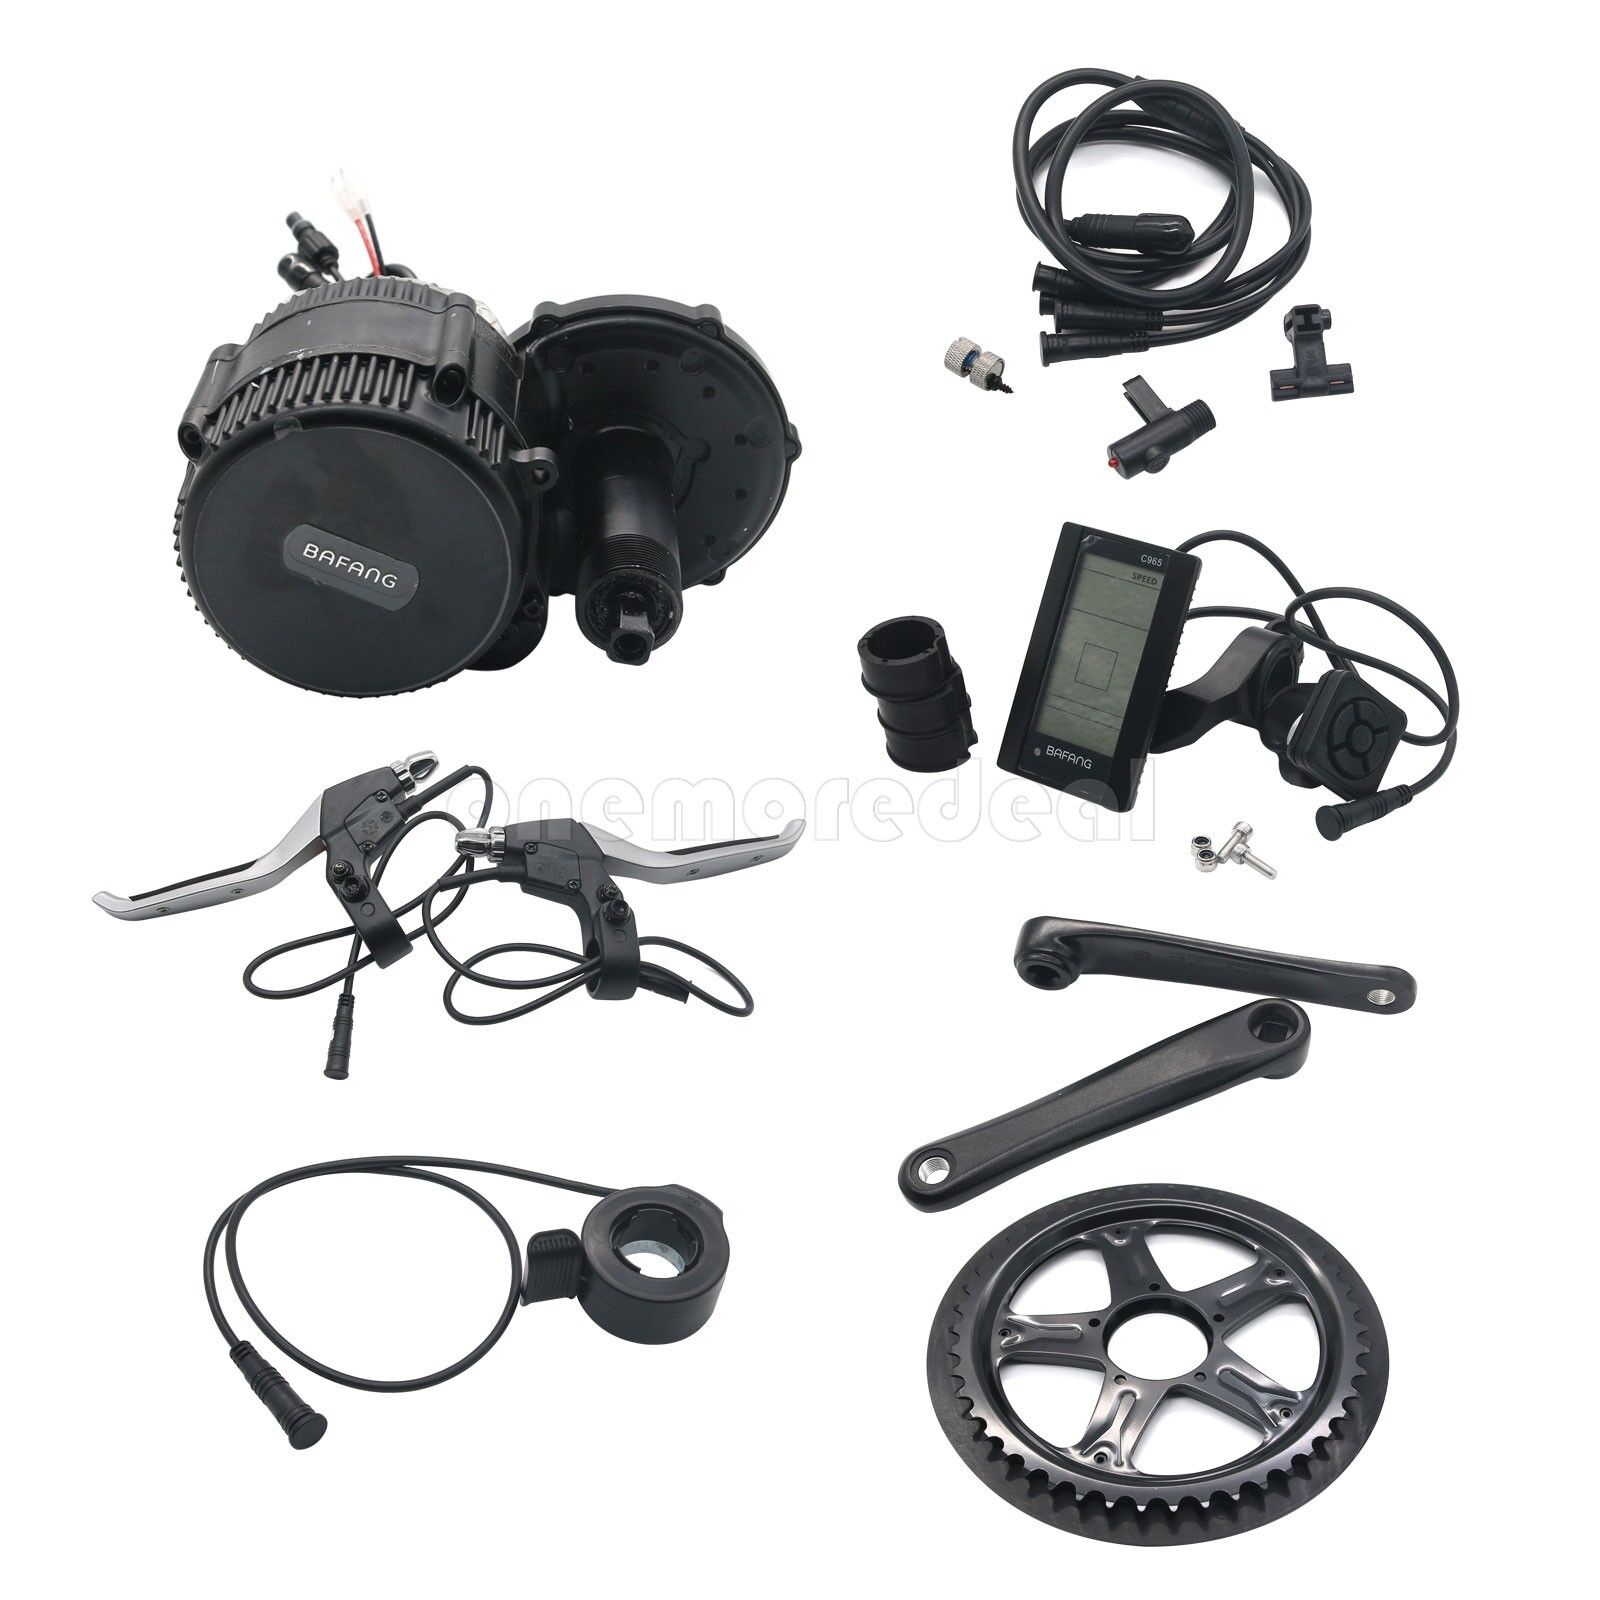 36V 48V 250W-1000W Bicycle Mid-Drive Motor Conversion Kit  & C965 LCD Display  order now